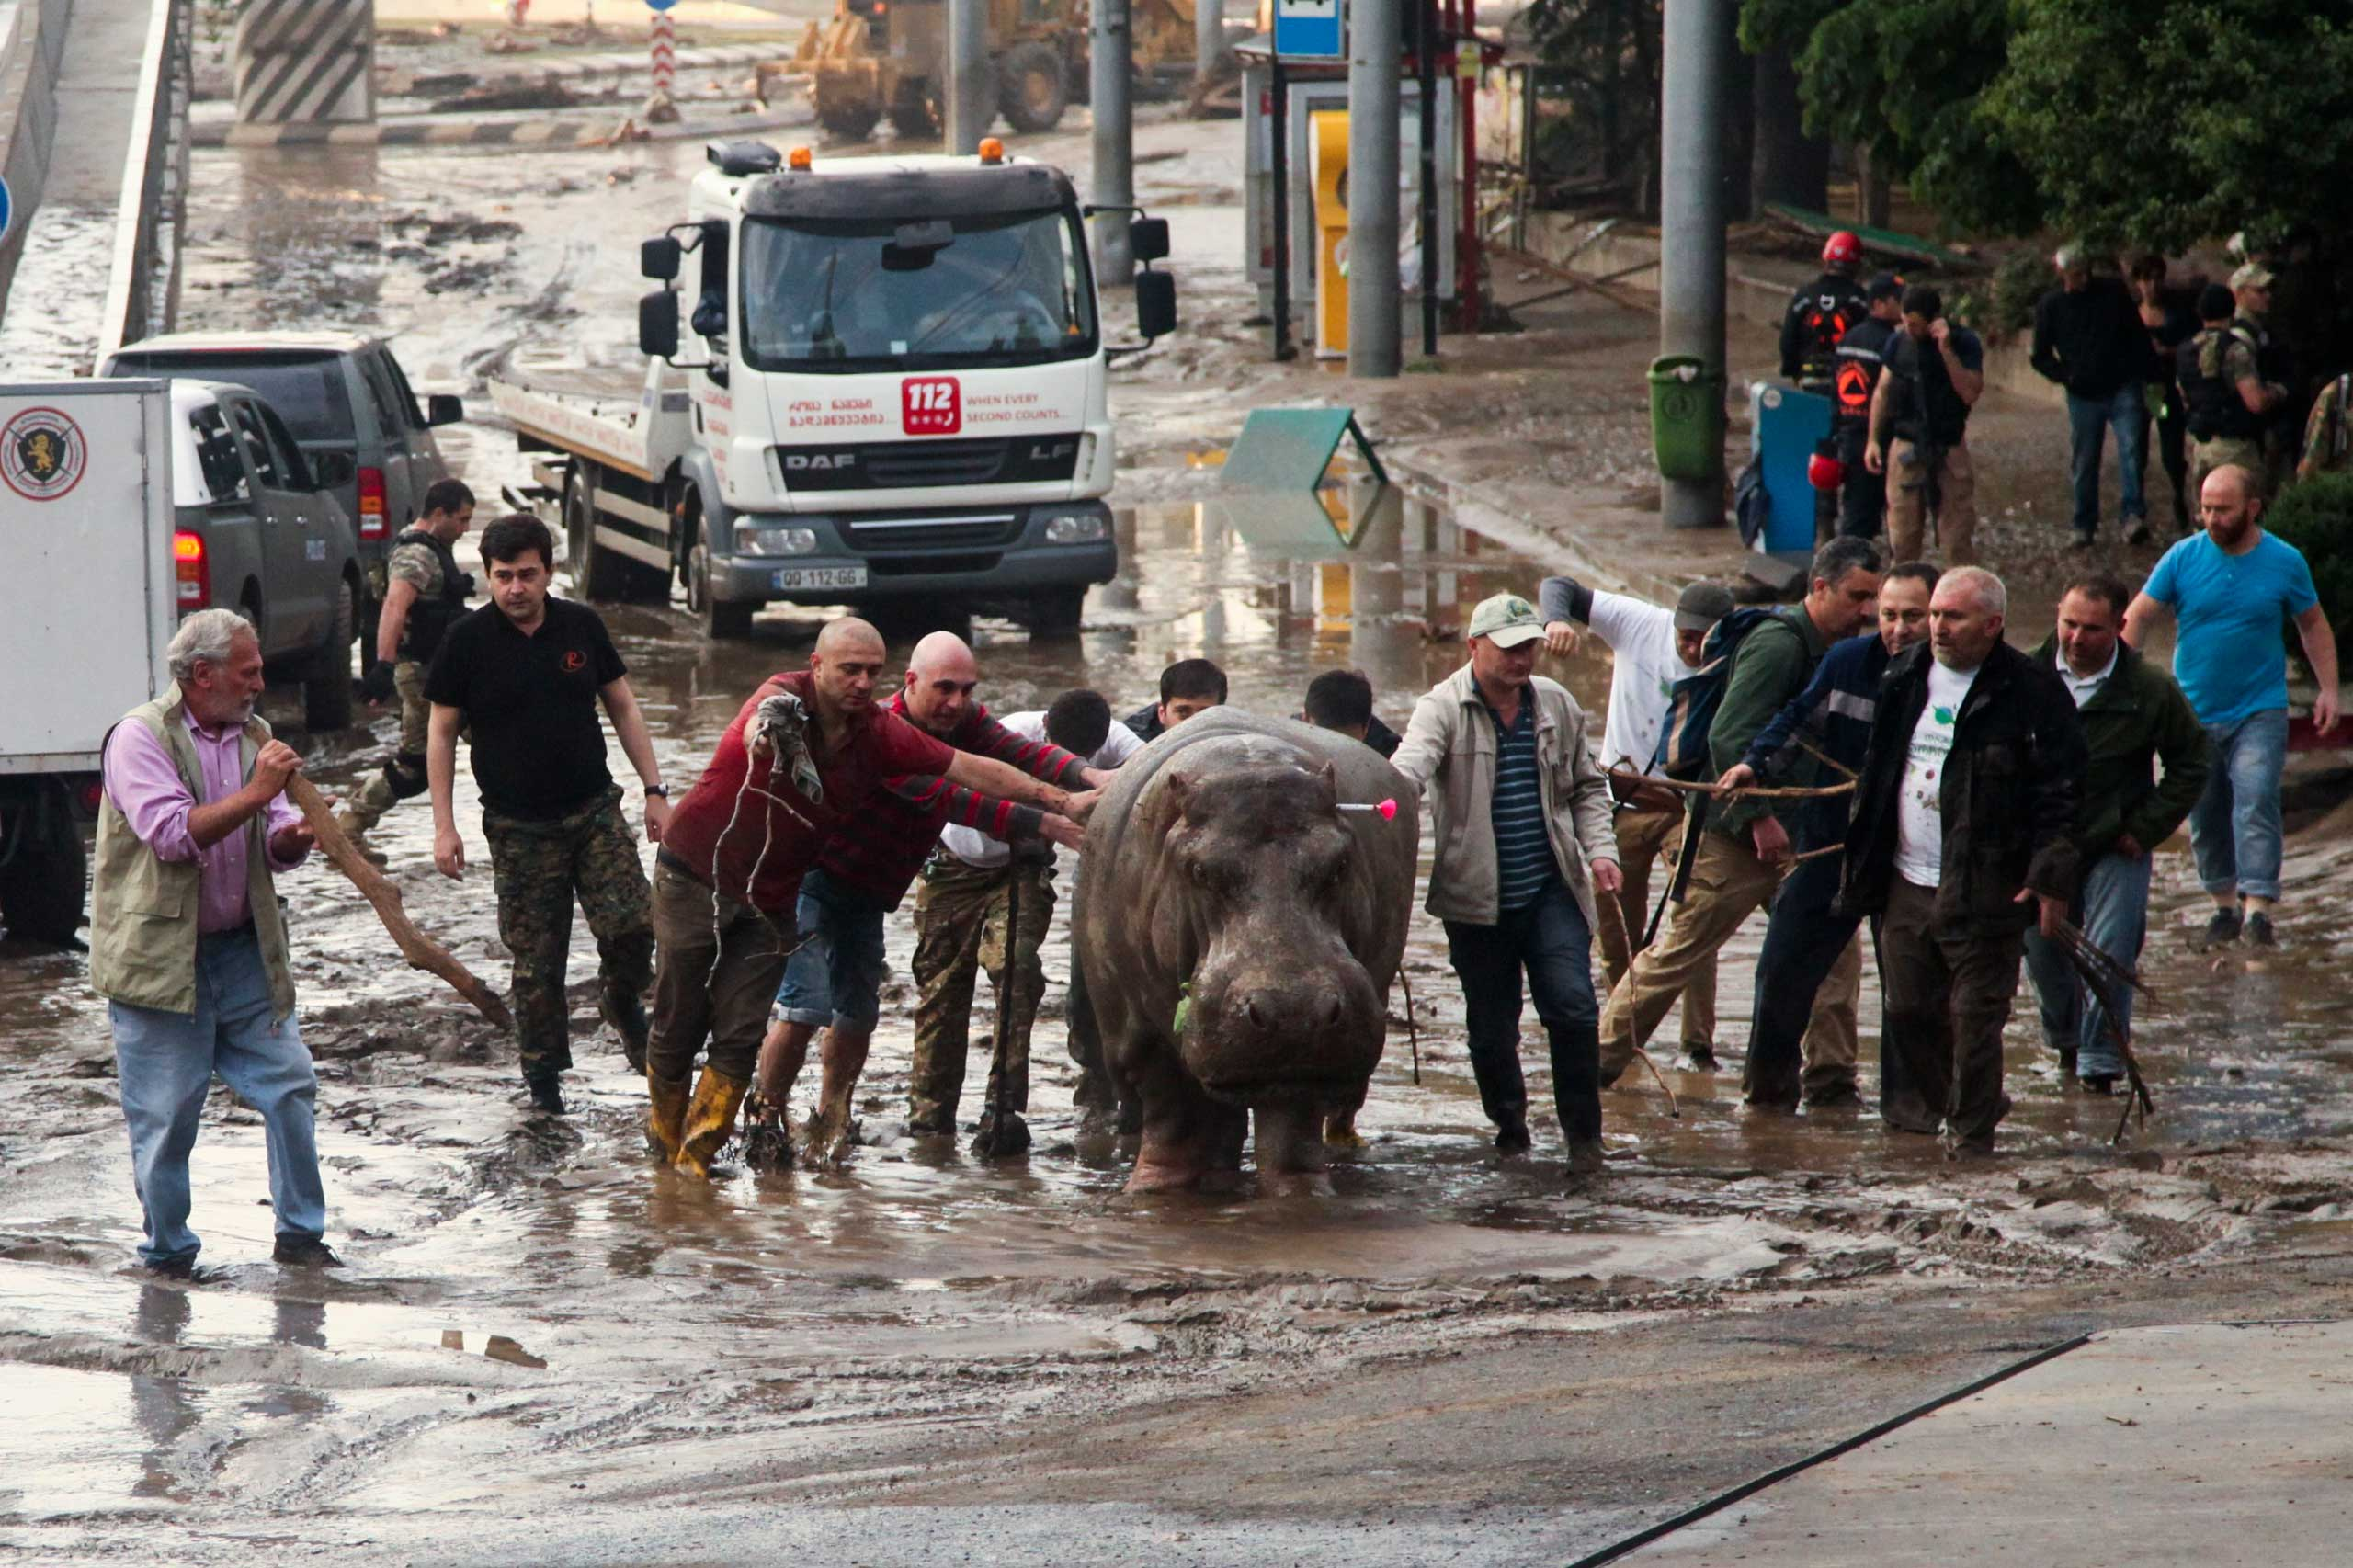 People assist a hippopotamus that has been shot with a tranquilizer dart after it escaped from a flooded zoo in Tbilisi, Georgia on June 14, 2015.